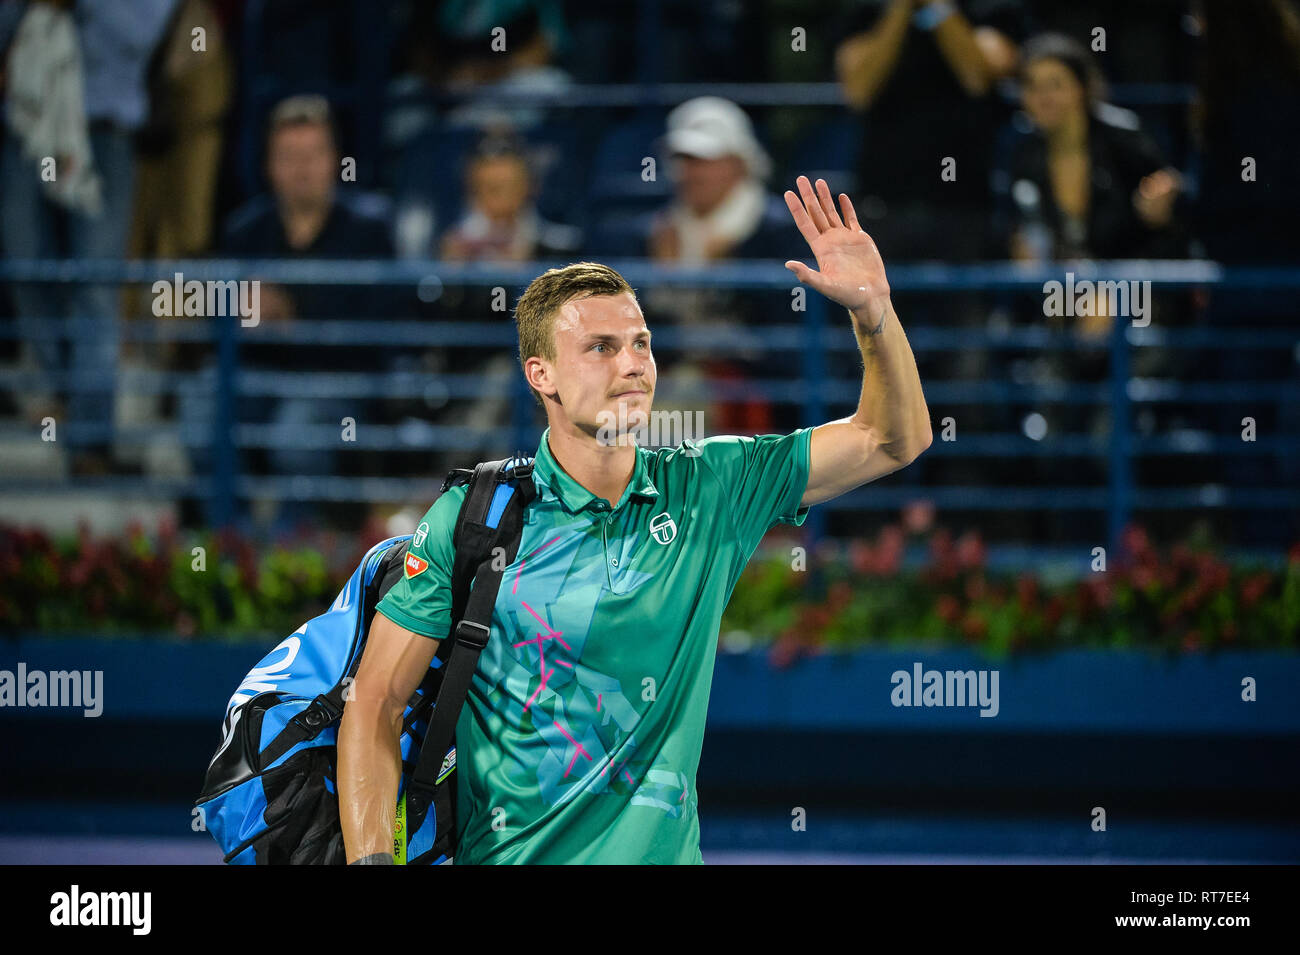 Dubai, UAE. 28th February 2019. Hungarian Marton Fucsovics acknowledges the crowd after losing to former World no. 1 Roger Federer of Switzerland wins in the quarter finals of the 2019 Dubai Duty Free Tennis Championships. Fucsovics lost 6-7 (6-8), 4-6 Credit: Feroz Khan/Alamy Live News - Stock Image